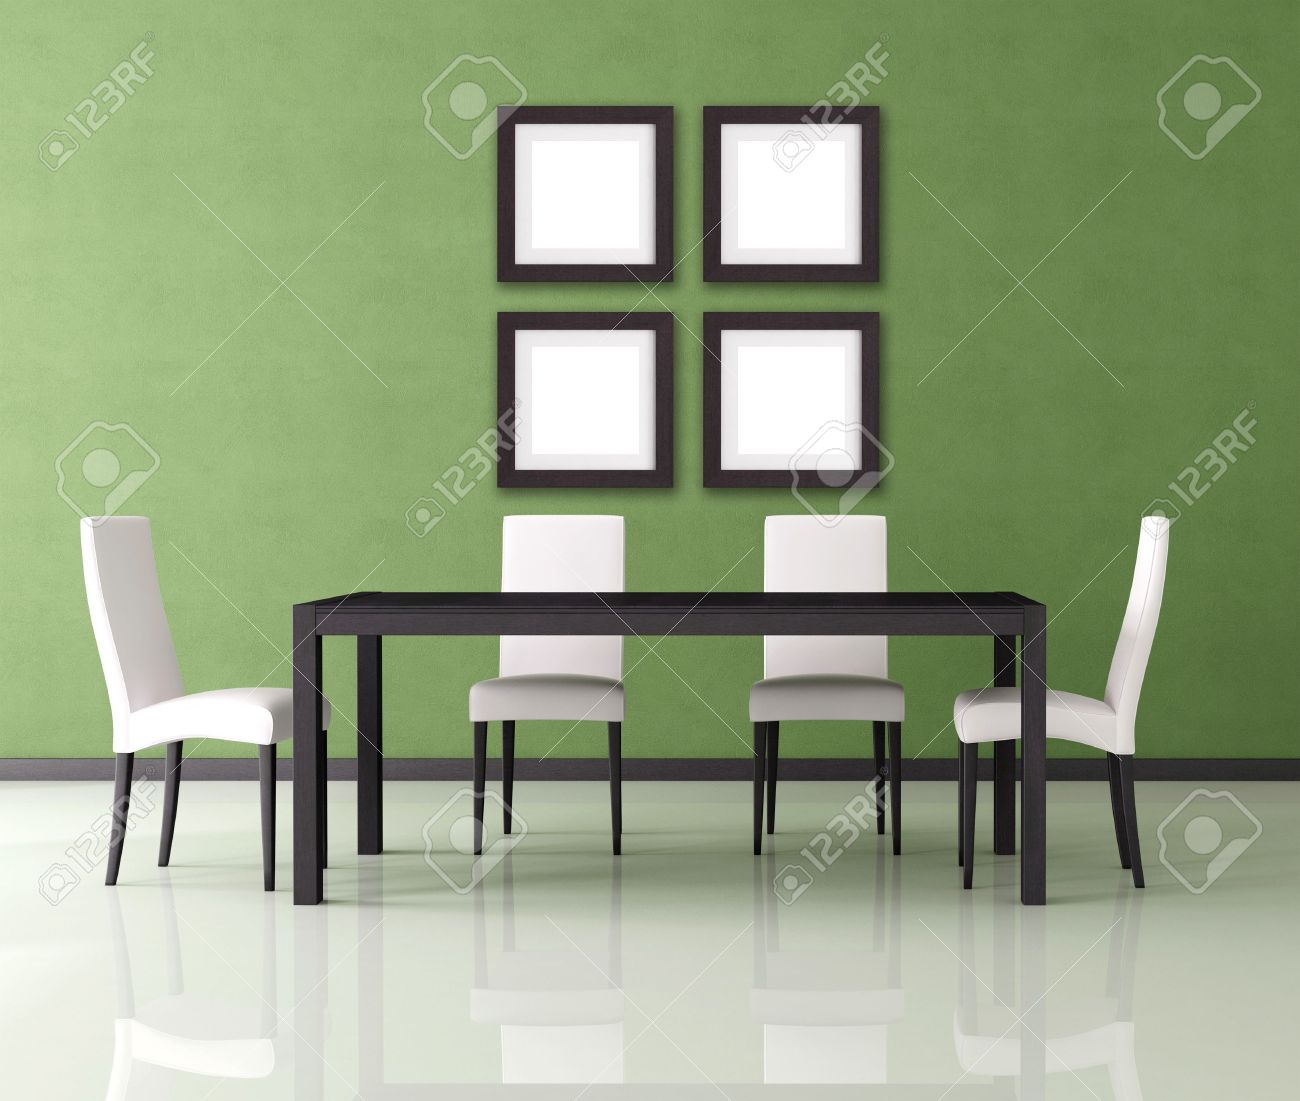 Modern dining room green - Green Modern Empty Dining Room Rendering Stock Photo 8064770